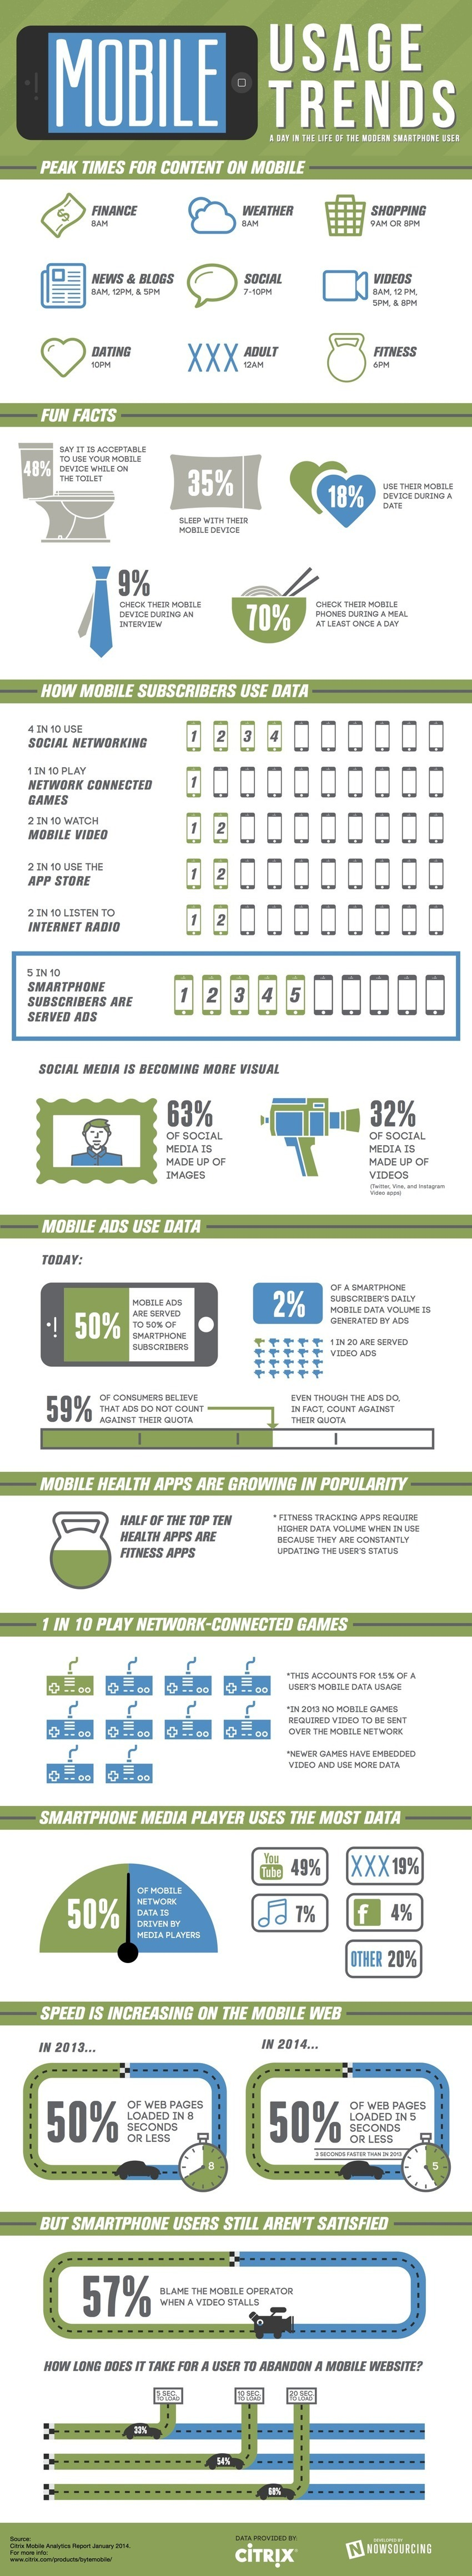 A Day in the Life of the Modern Smartphone User [Infographic]